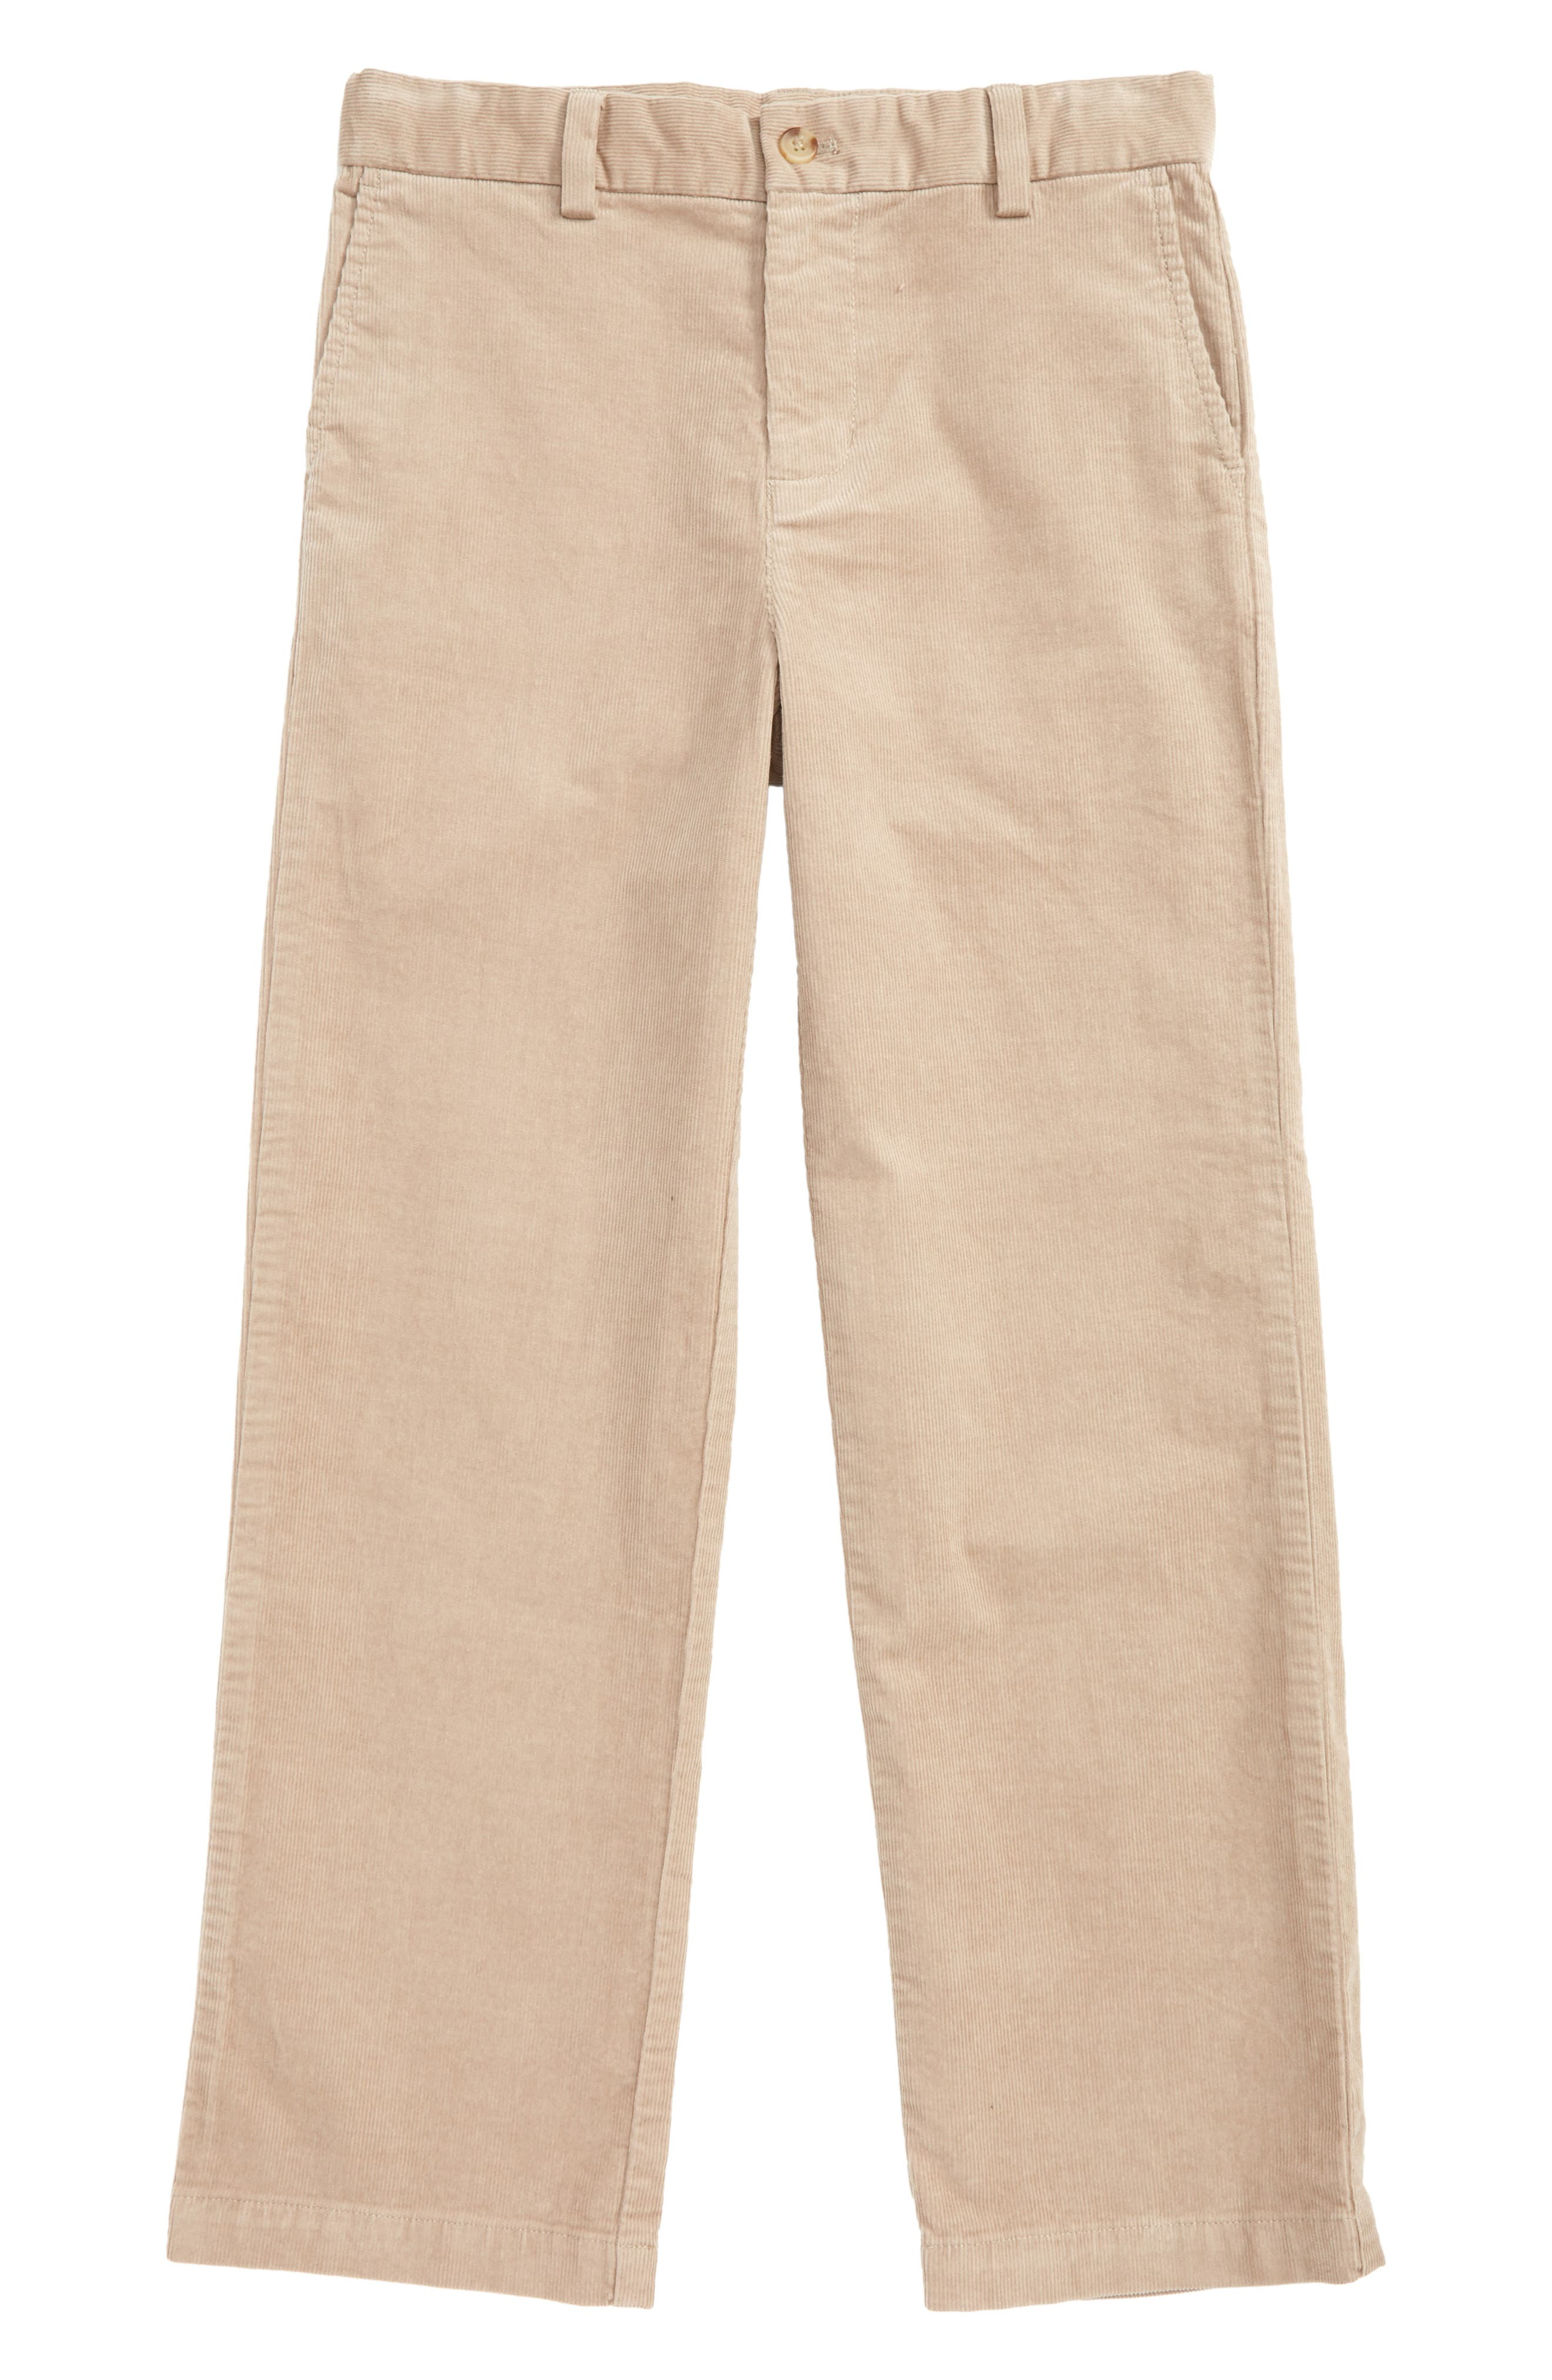 Breaker Corduroy Pants,                         Main,                         color,